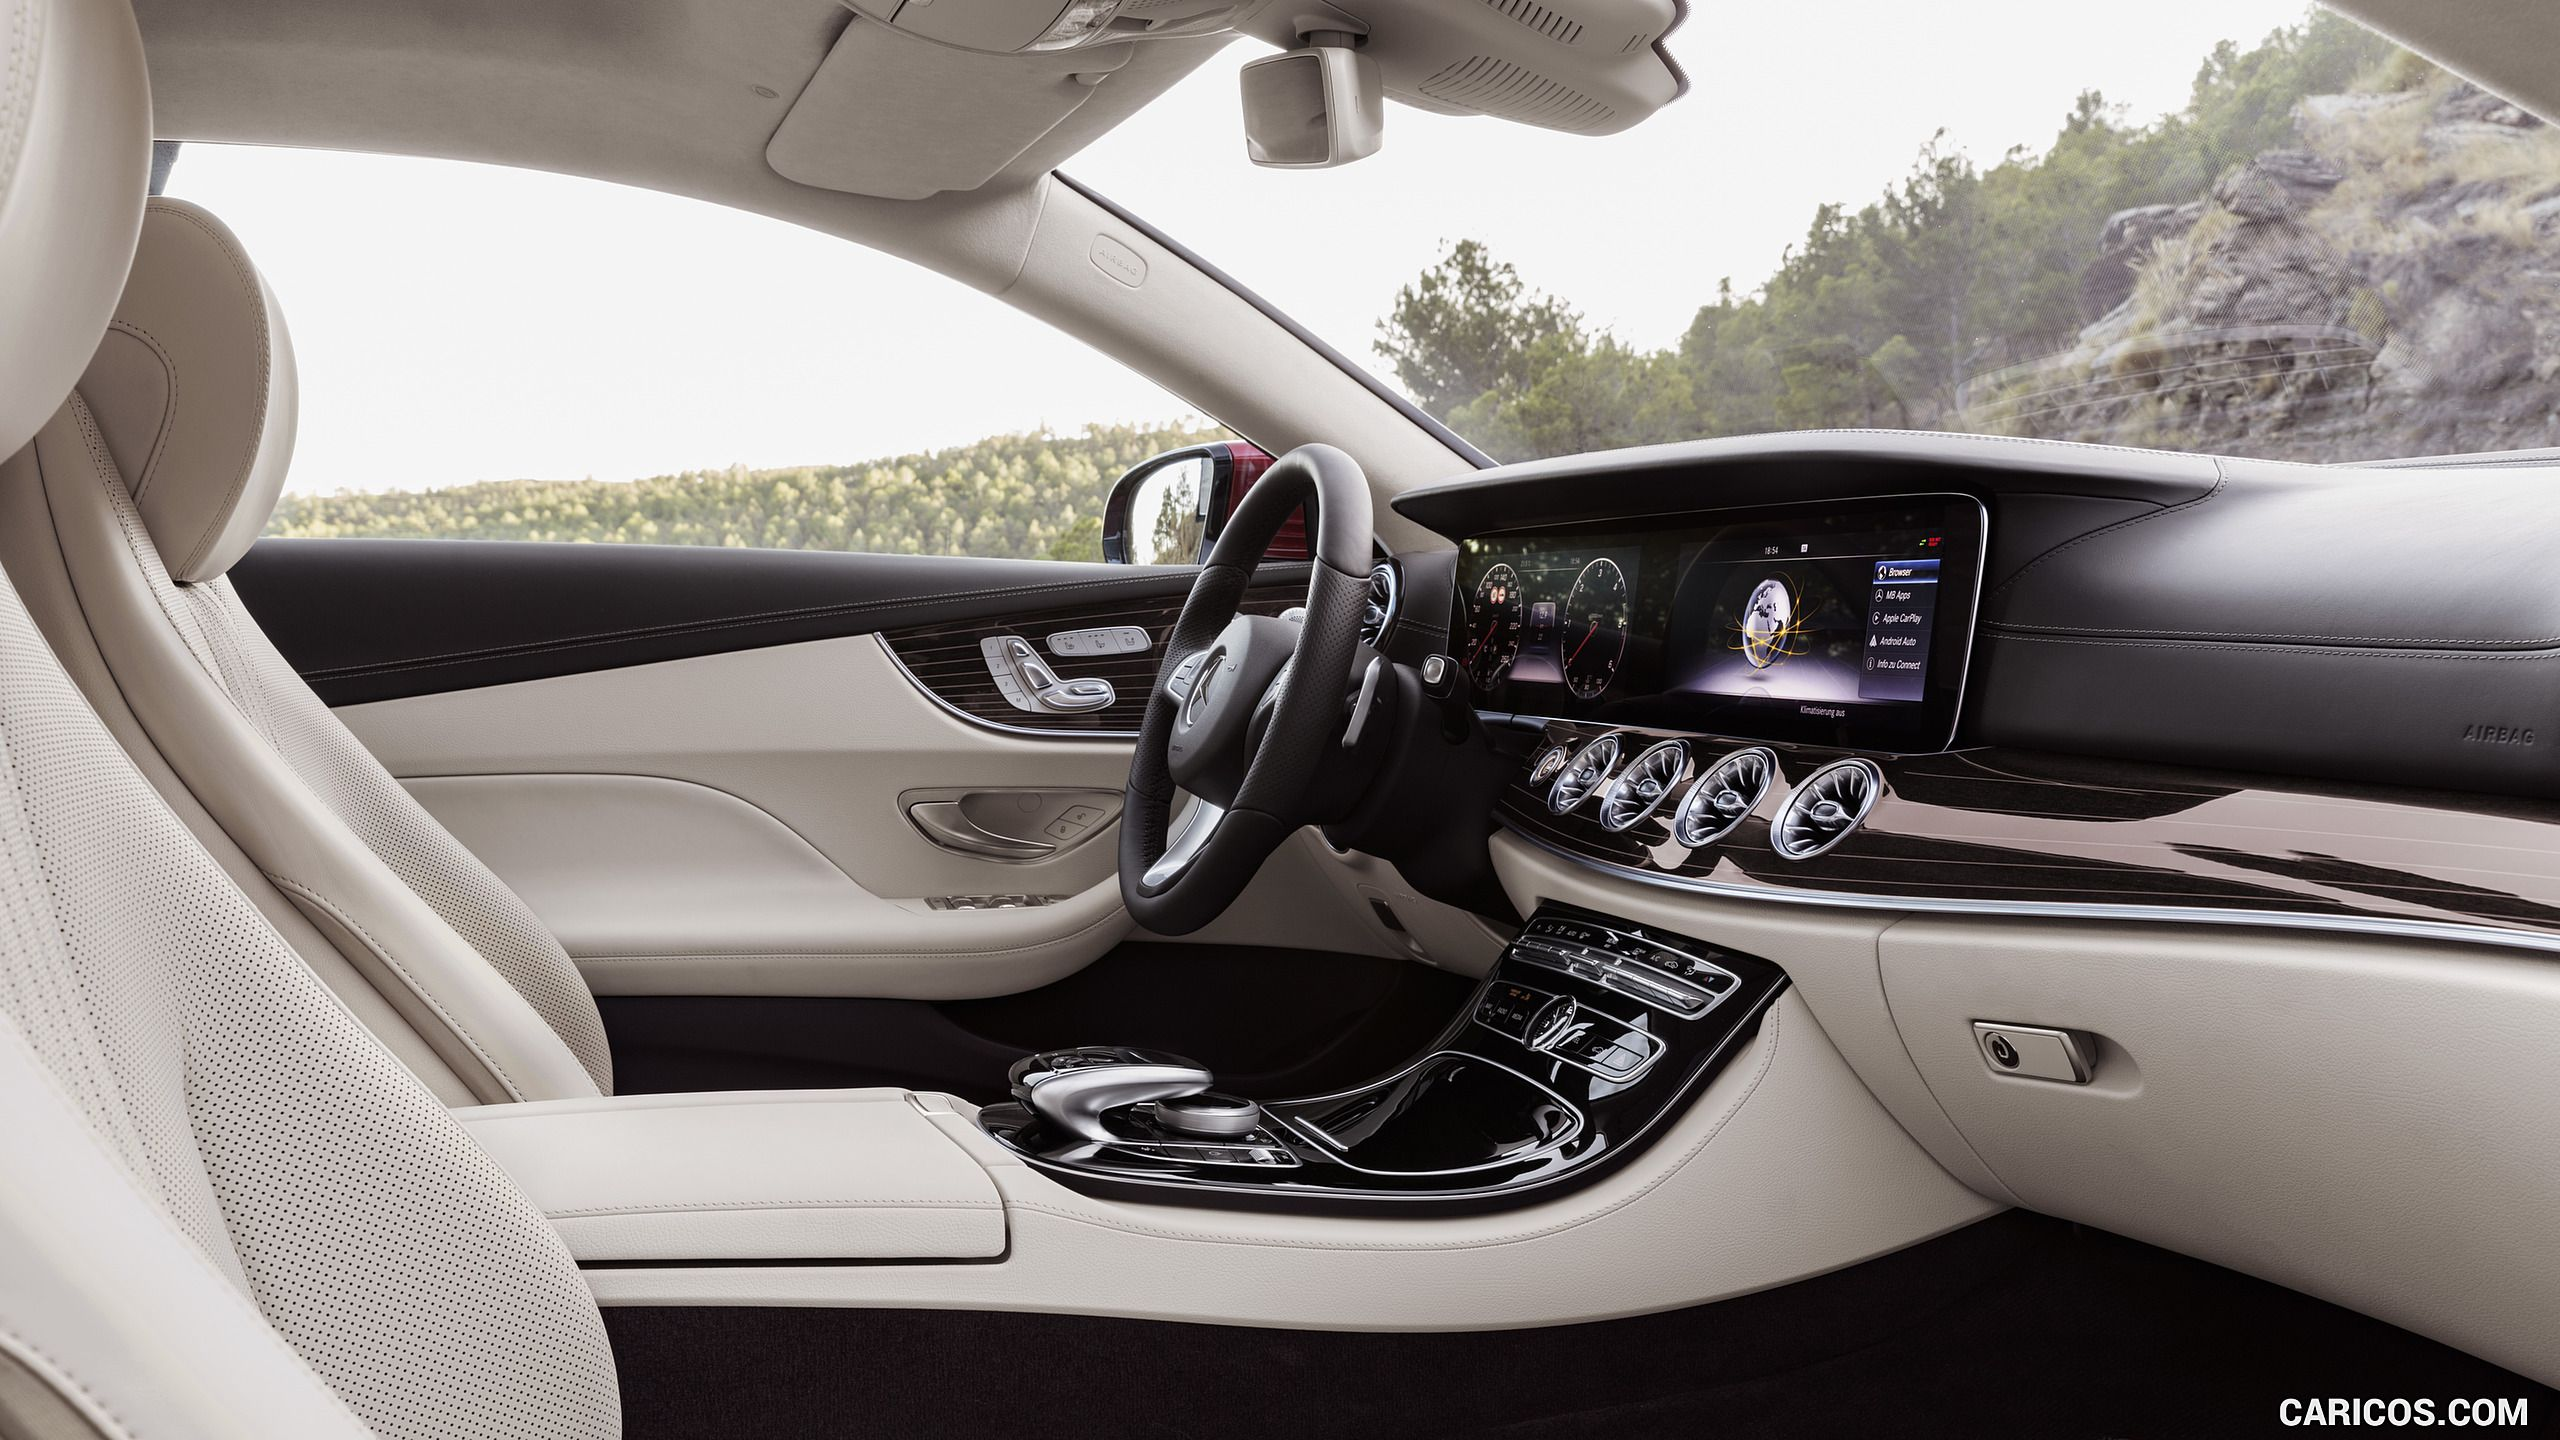 Next Stop Pinterest With Images Mercedes E Class Coupe